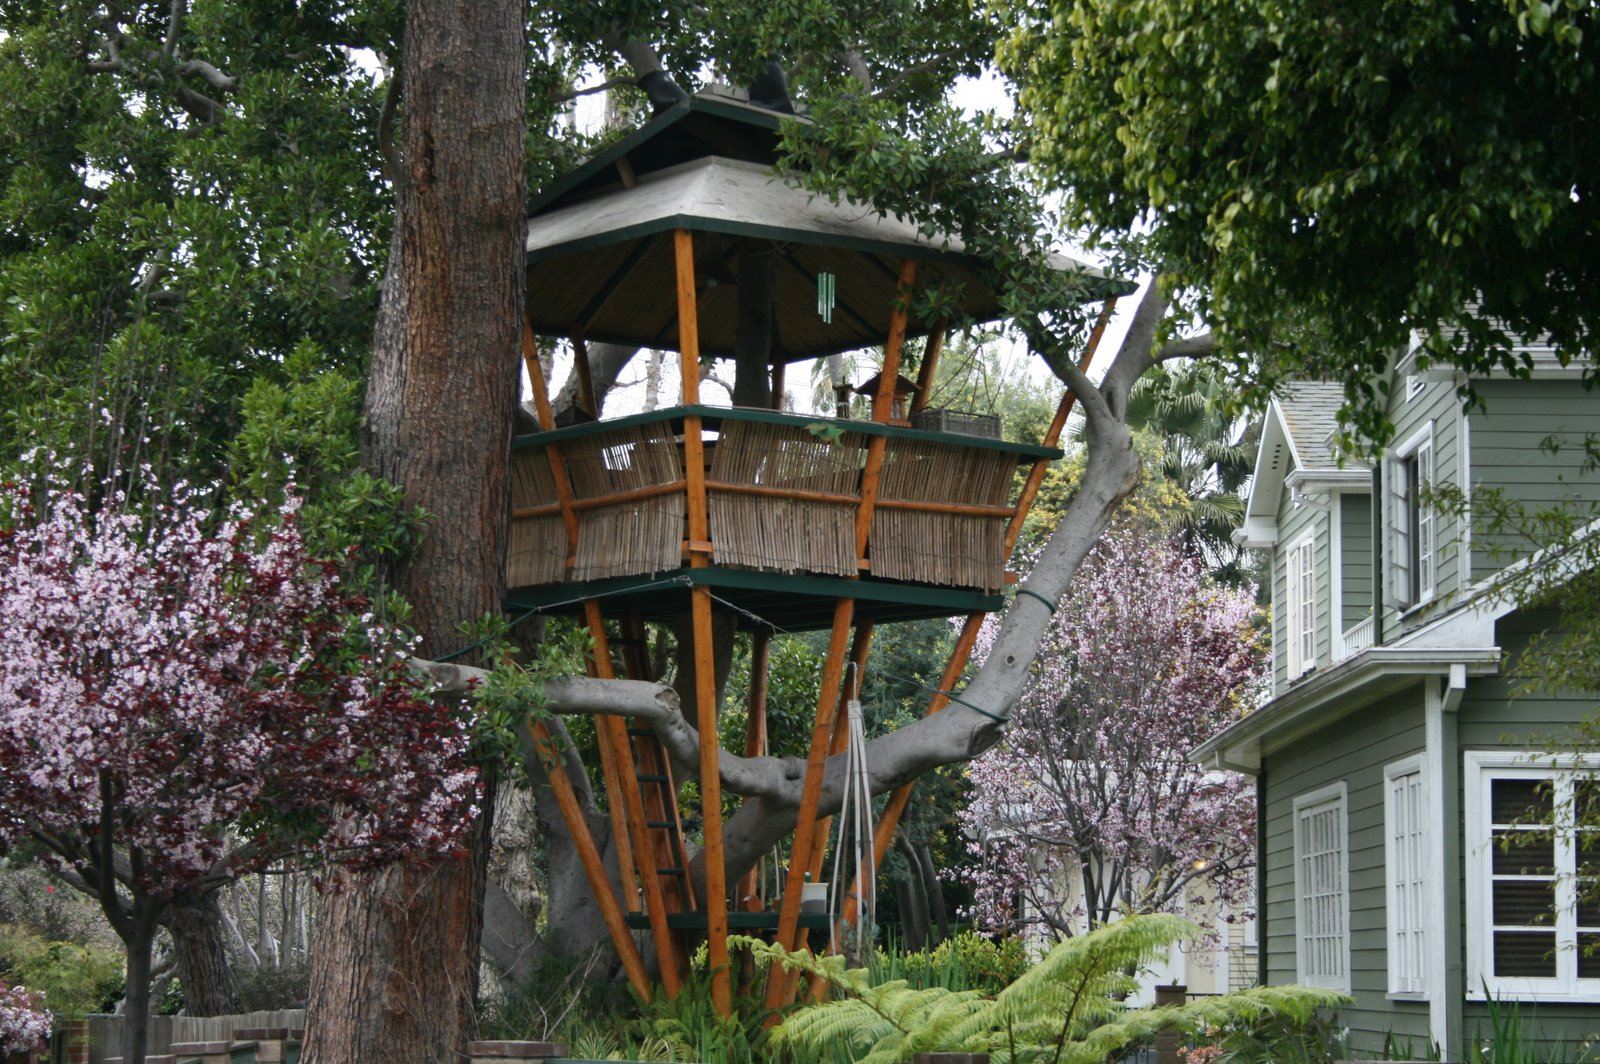 10 best diy tree houses ideas | SEEK DIY Designer Tree Houses Amazing on amazing flowers, crazy houses, amazing hotels, unusual houses, cool houses, tiny houses, strange houses, amazing treehouses of the world, amazing chairs, amazing pools, amazing trucks, amazing kitchens, prettiest houses, goat houses, amazing architecture, amazing bathrooms, fairy houses, awesome houses, amazing treehouse homes, amazing mansions,